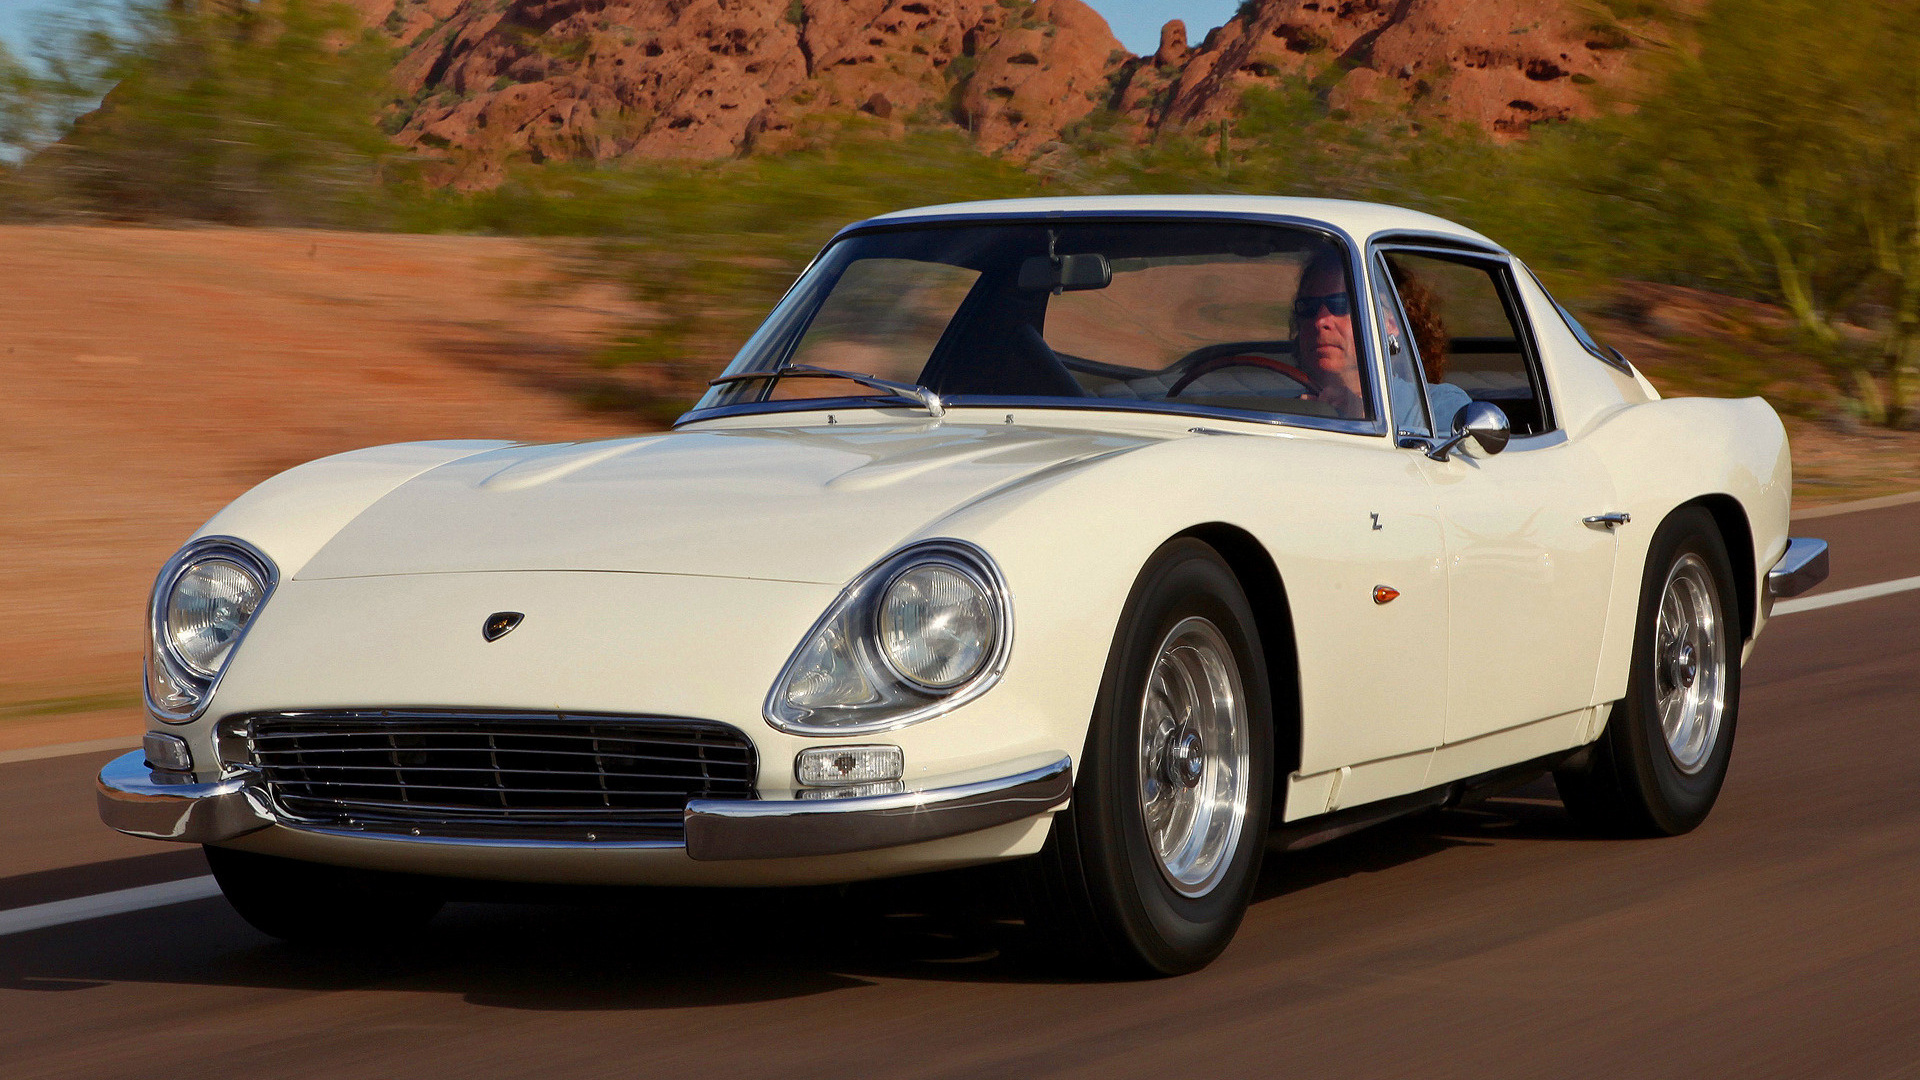 1965 Lamborghini 3500 GTZ - Wallpapers and HD Images | Car ...